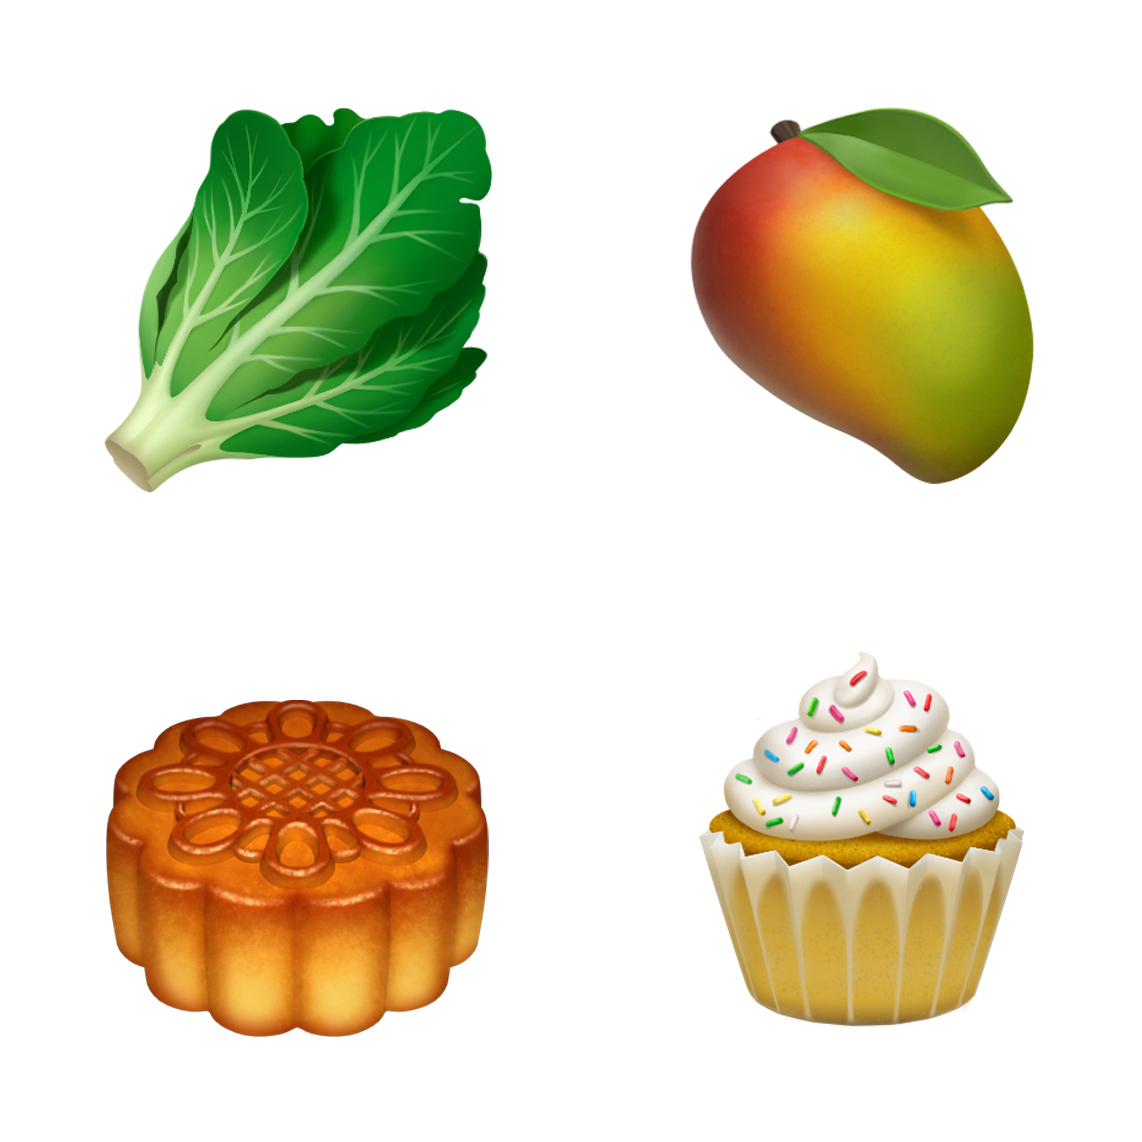 Apple teases out over 70 new Emoji coming to iOS and Mac